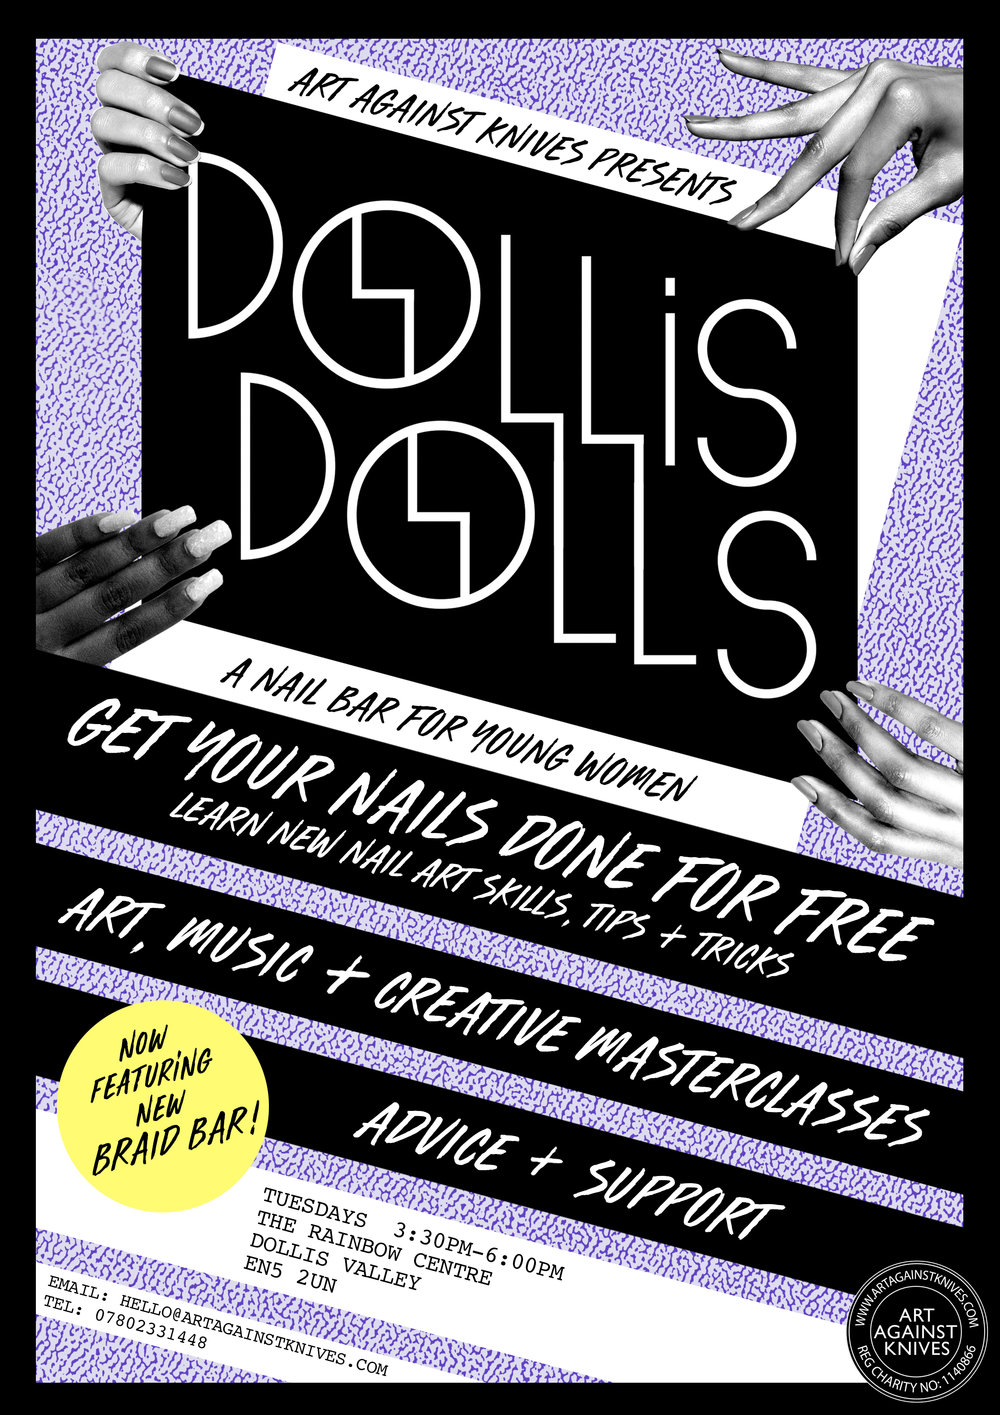 Dollis Dolls flyer.jpg